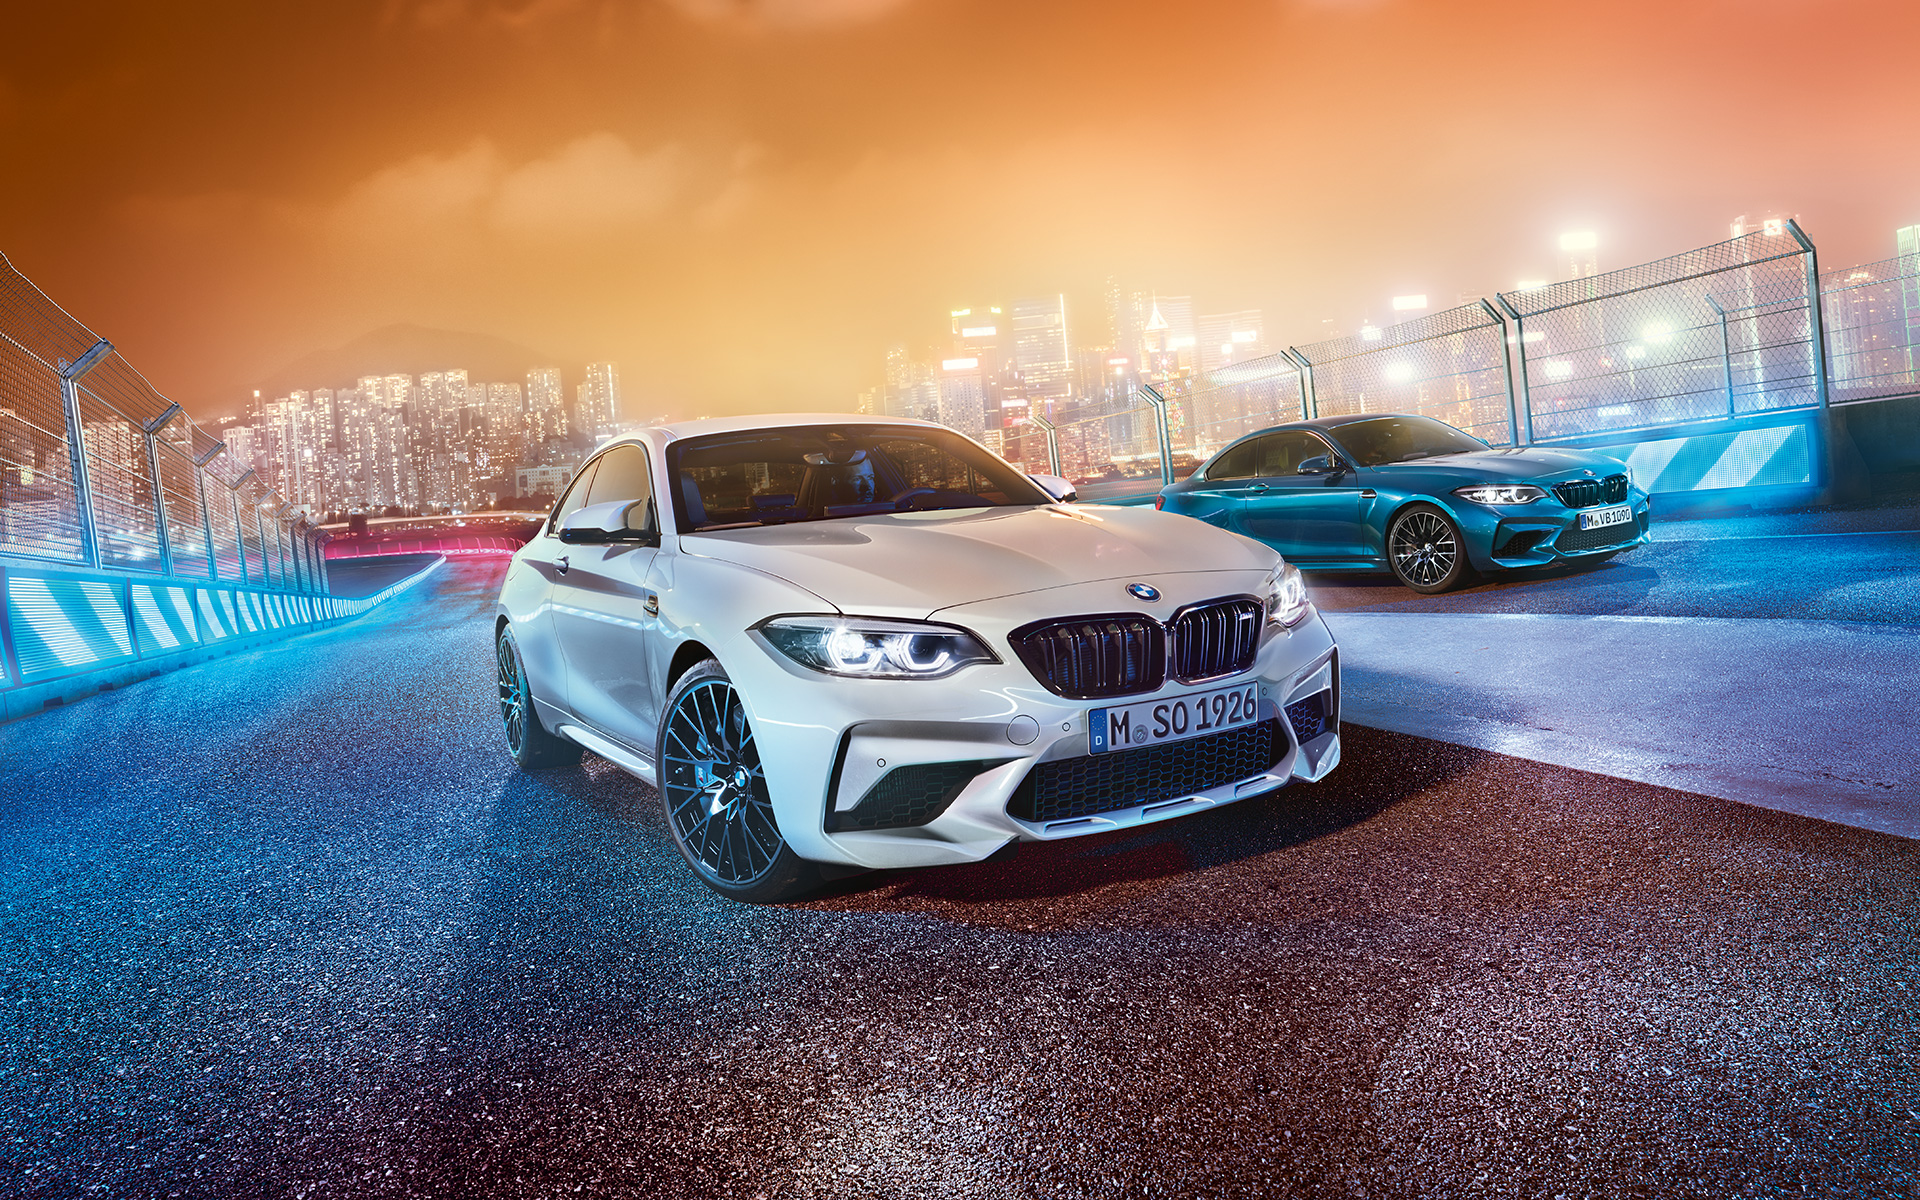 White and blue BMW M2 Competition standing on race track in front of nocturnal cityscape.